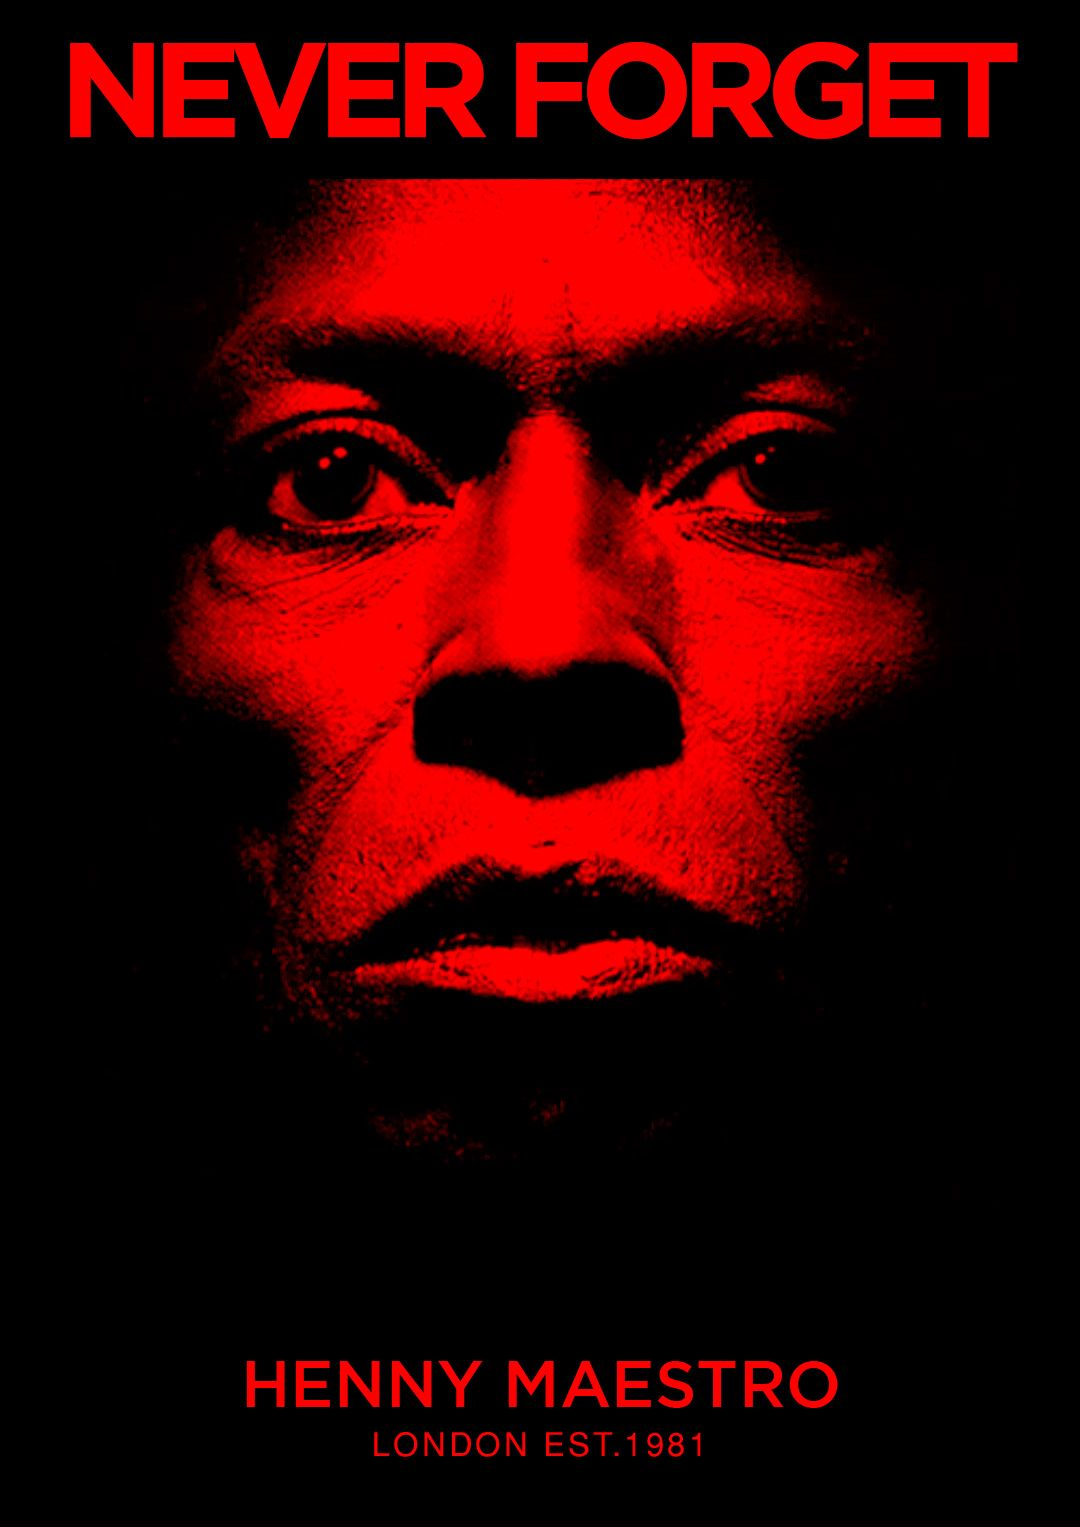 Never Forget Fridays - Giving Praise to the Ancestors!! #MilesDavis -  Blues/Jazz Legend   http://www.henny-maestro.com/ #GODERA #London #Africa #Ancestors #motivation #ghana #ashanti #akan #inspiration #unity #love  #peace #happiness #blues #jazz #music